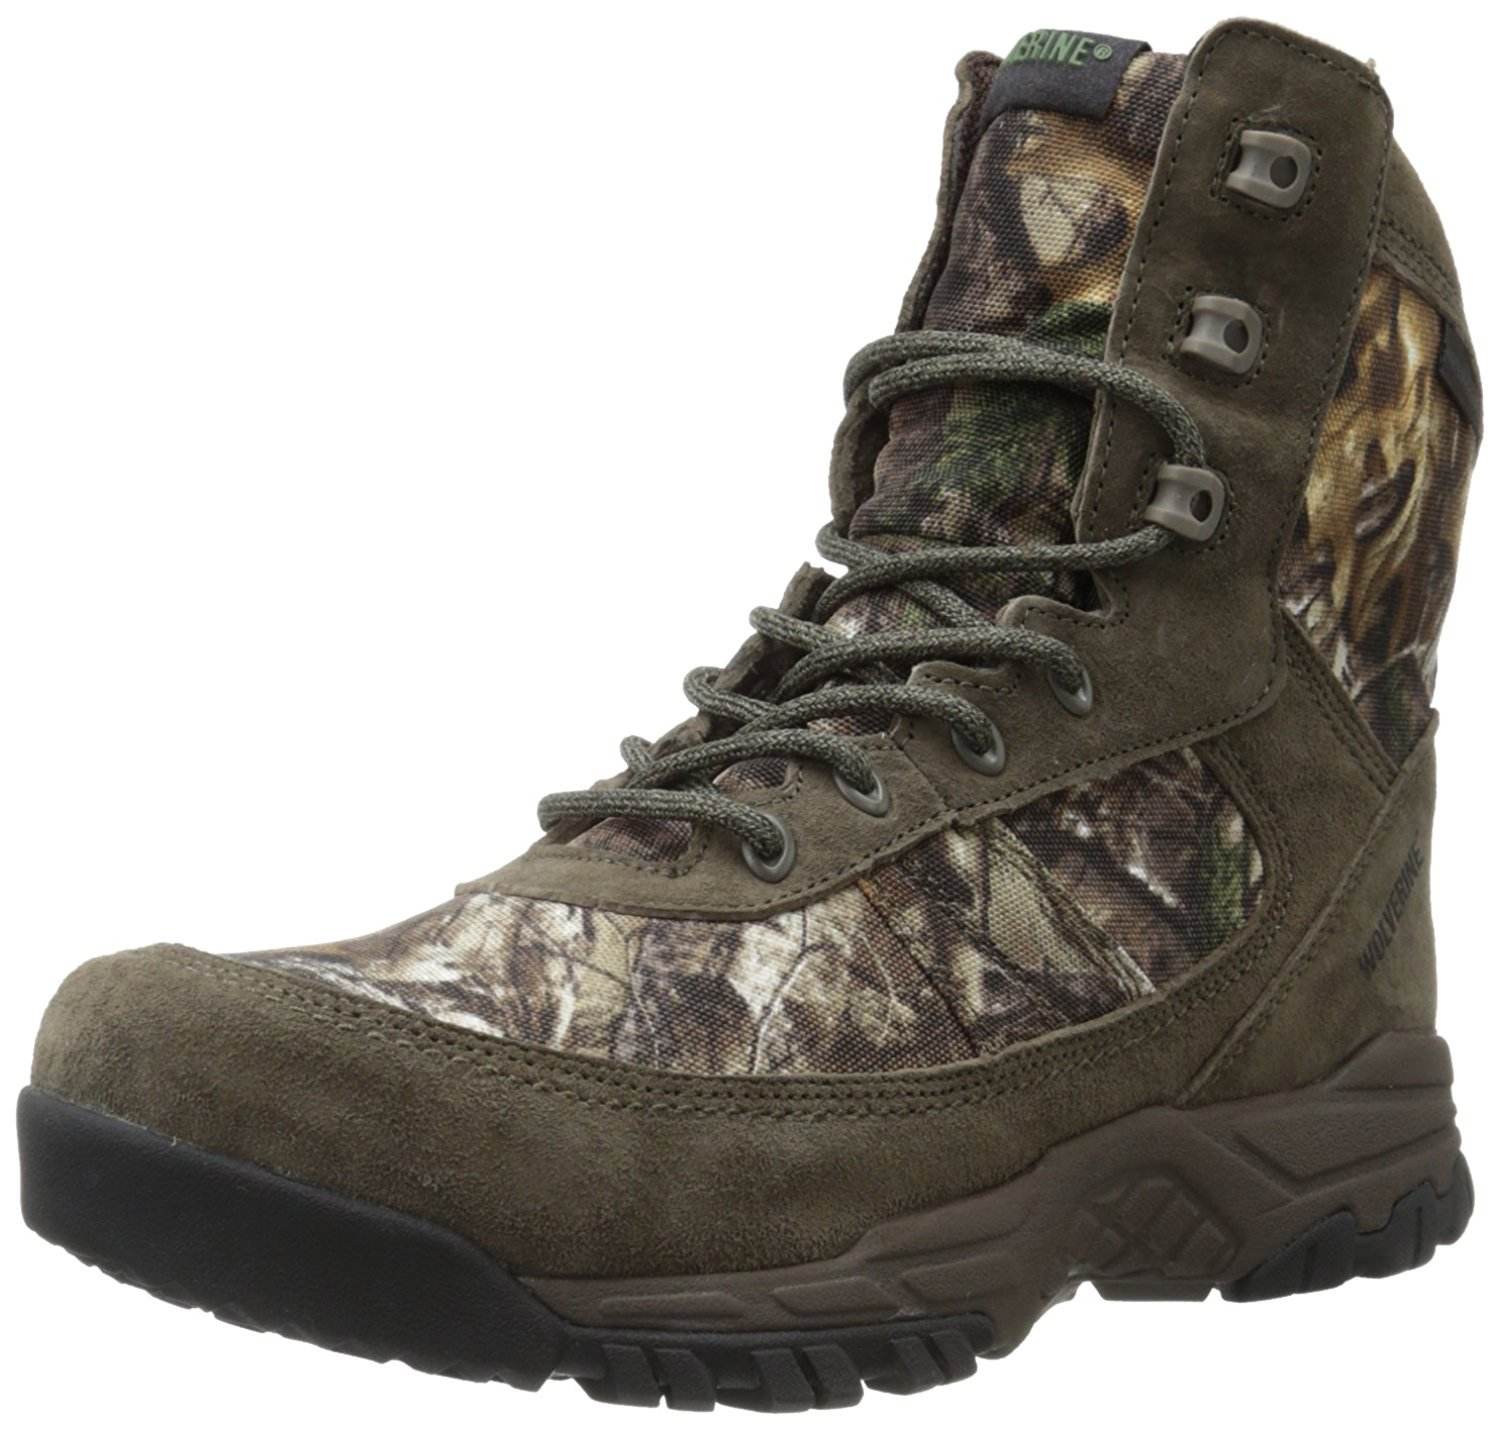 Wolverine Men's Bobwhite High Hunting Boot,Green,13 M US